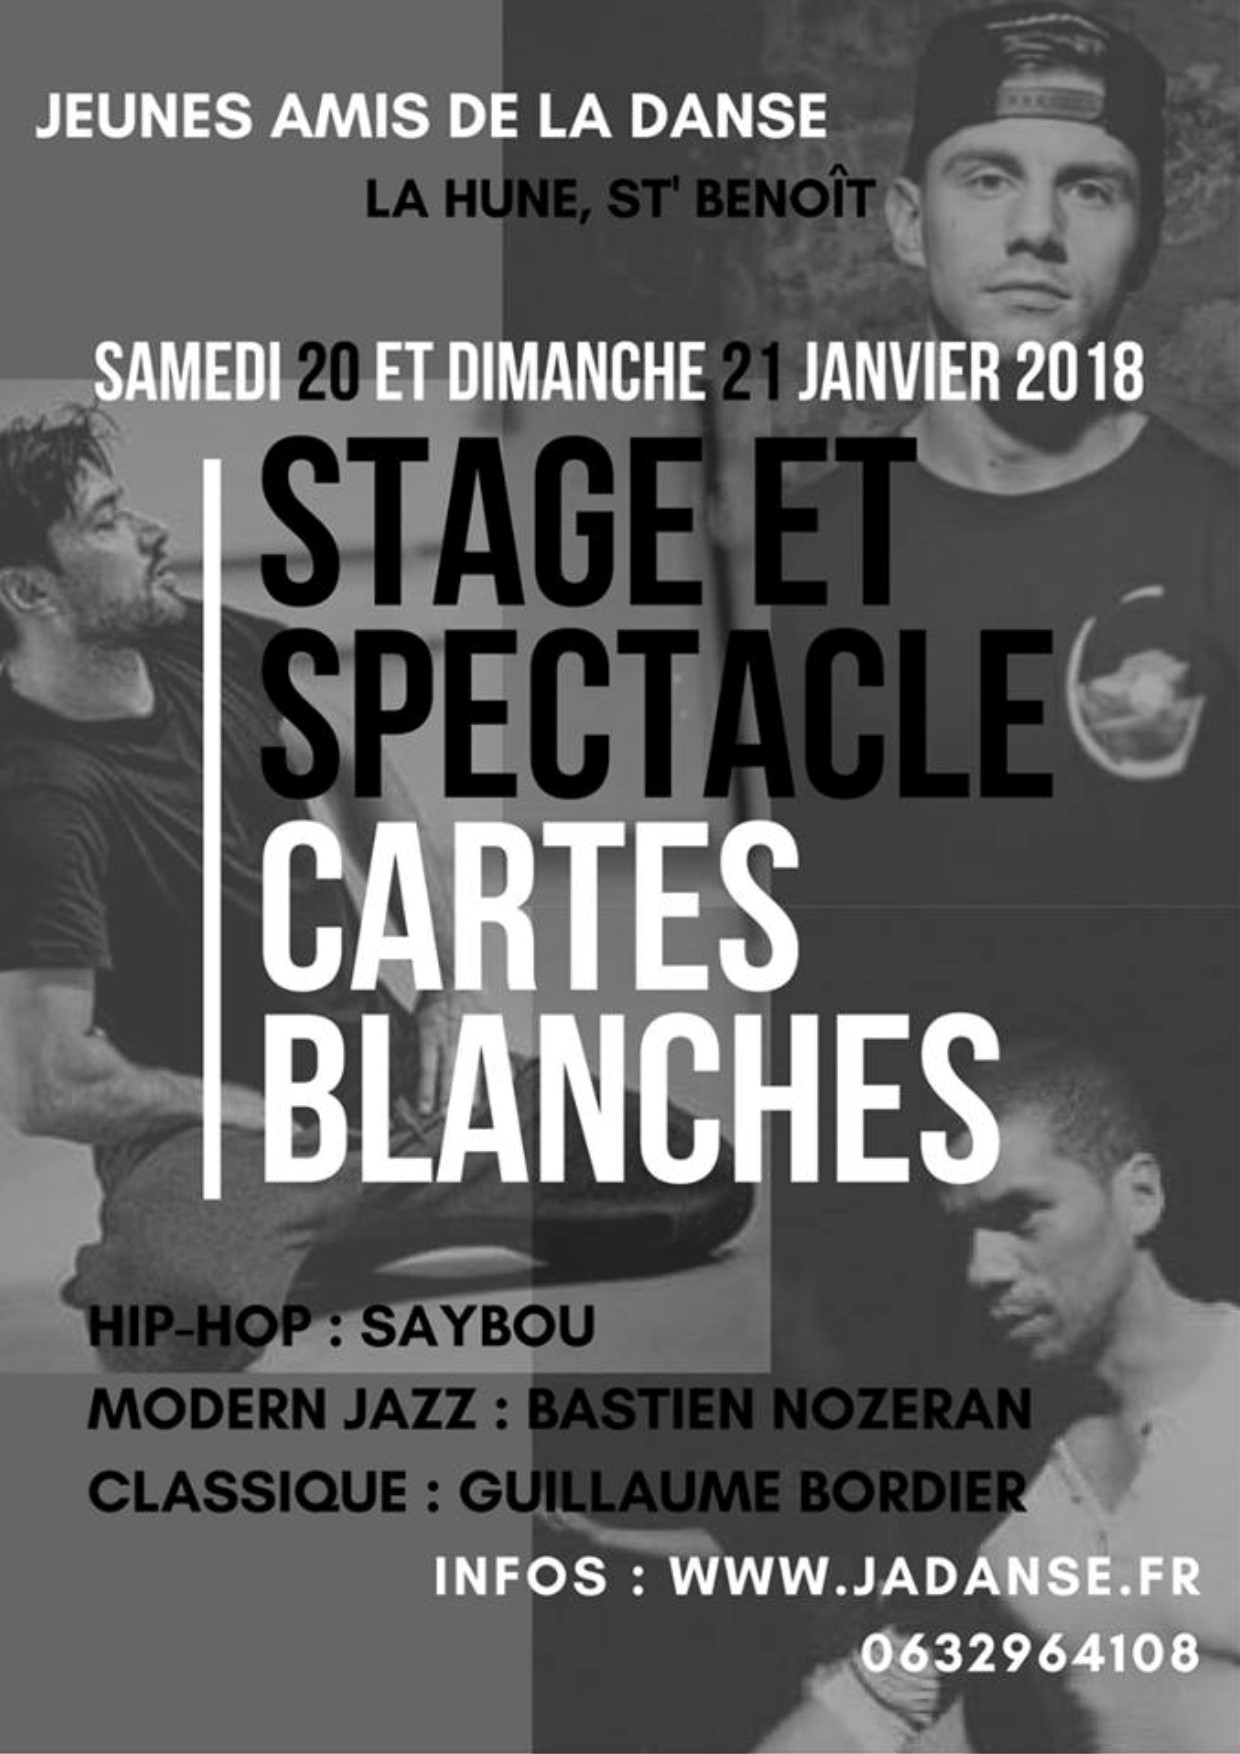 Cartes blanches 2018